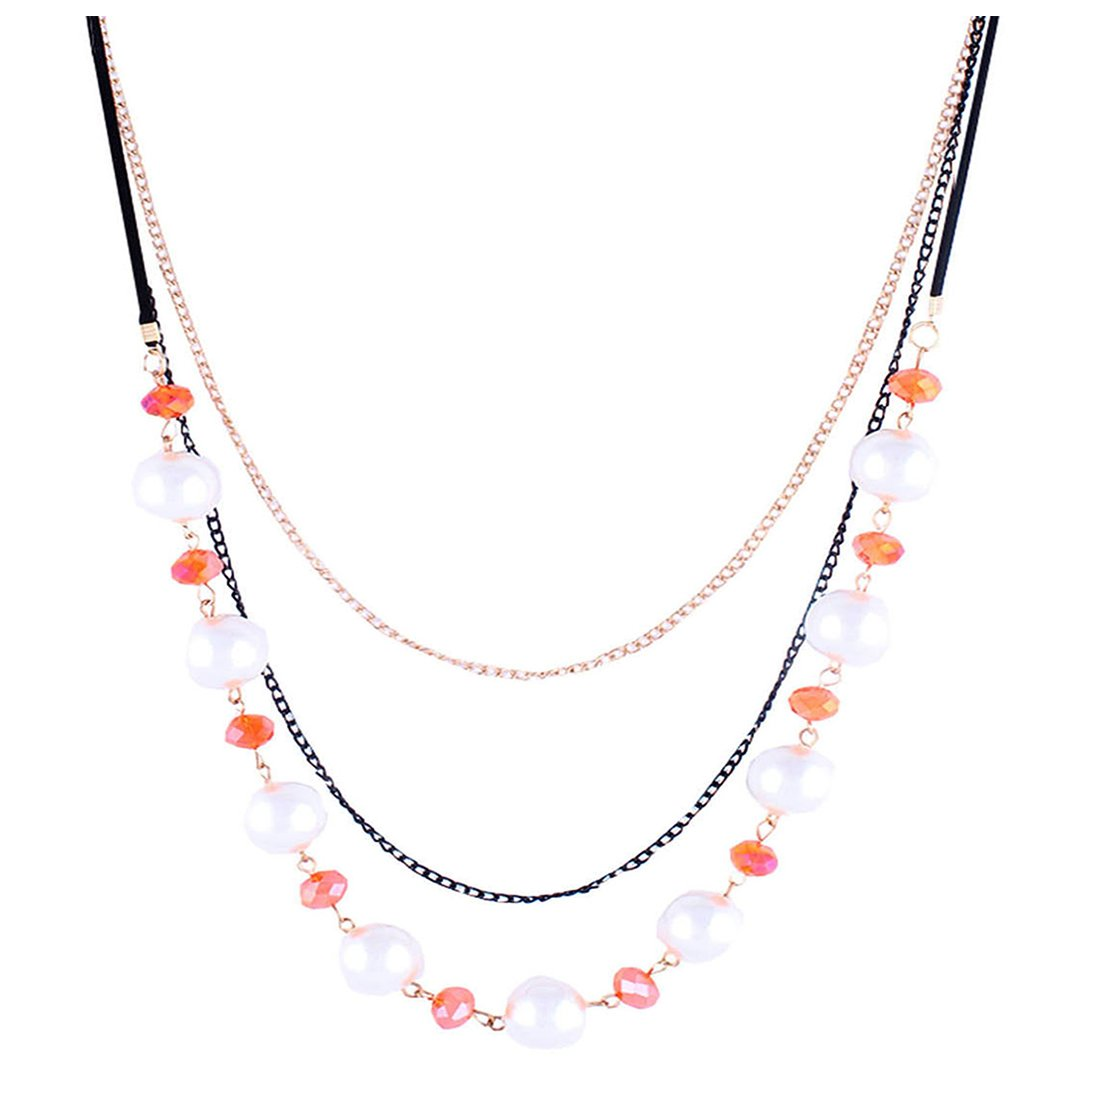 5cdf3443ec427 Buy Bling studio black and gold chain with round pearls and orange ...